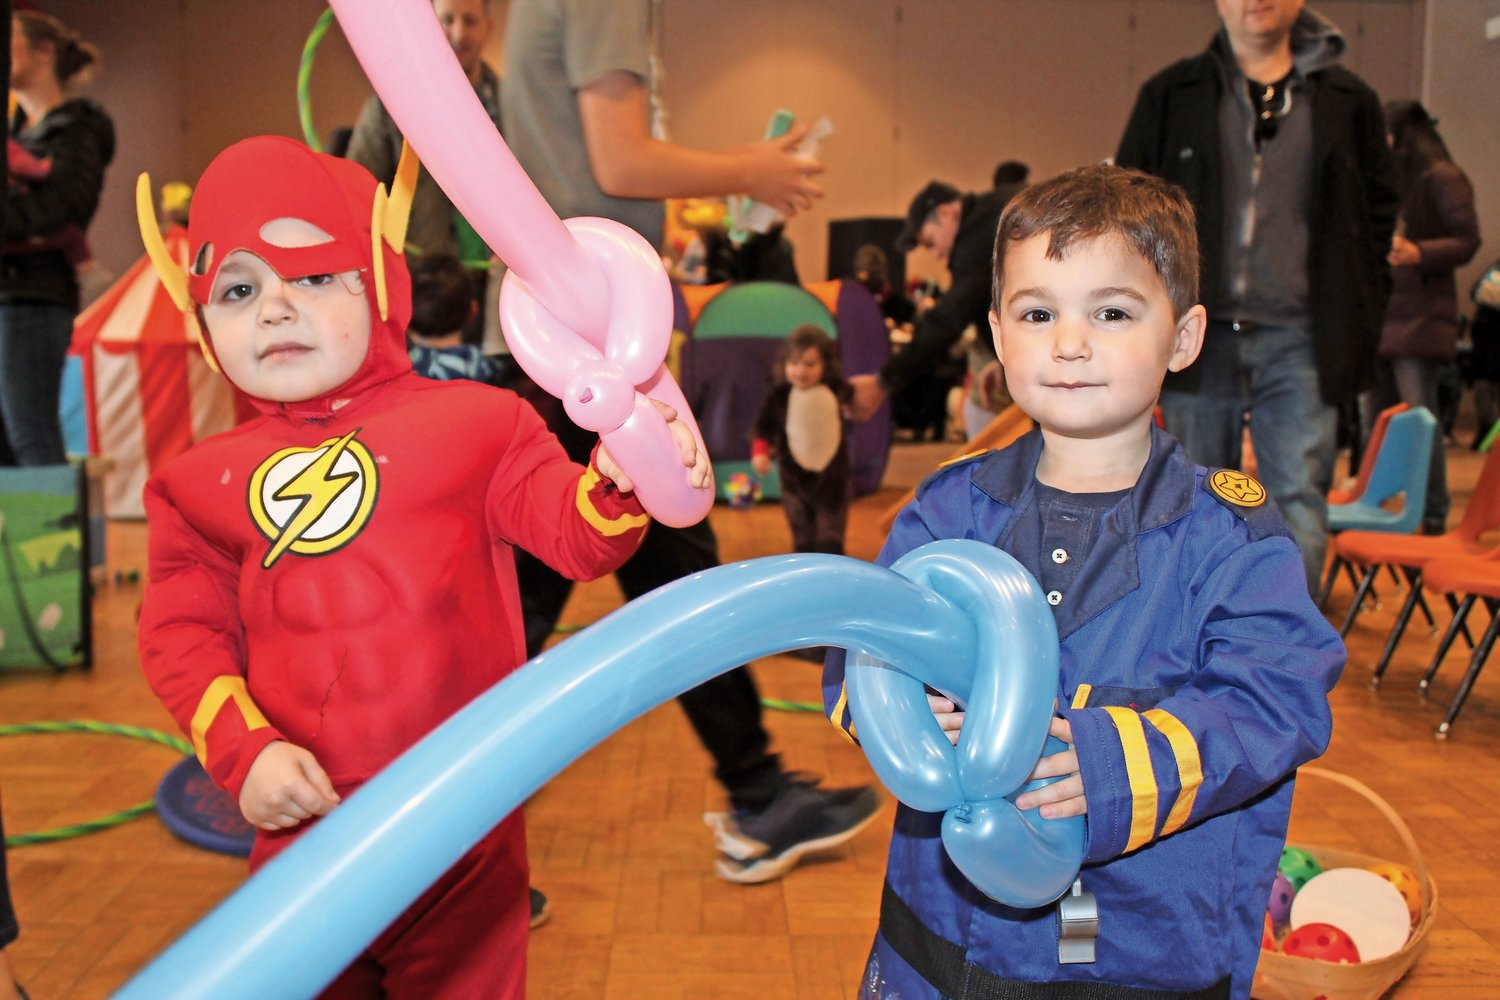 Superheroes-in-training Will, left, and Jake Kleinman, of Old Brookville, brandished their balloon swords.